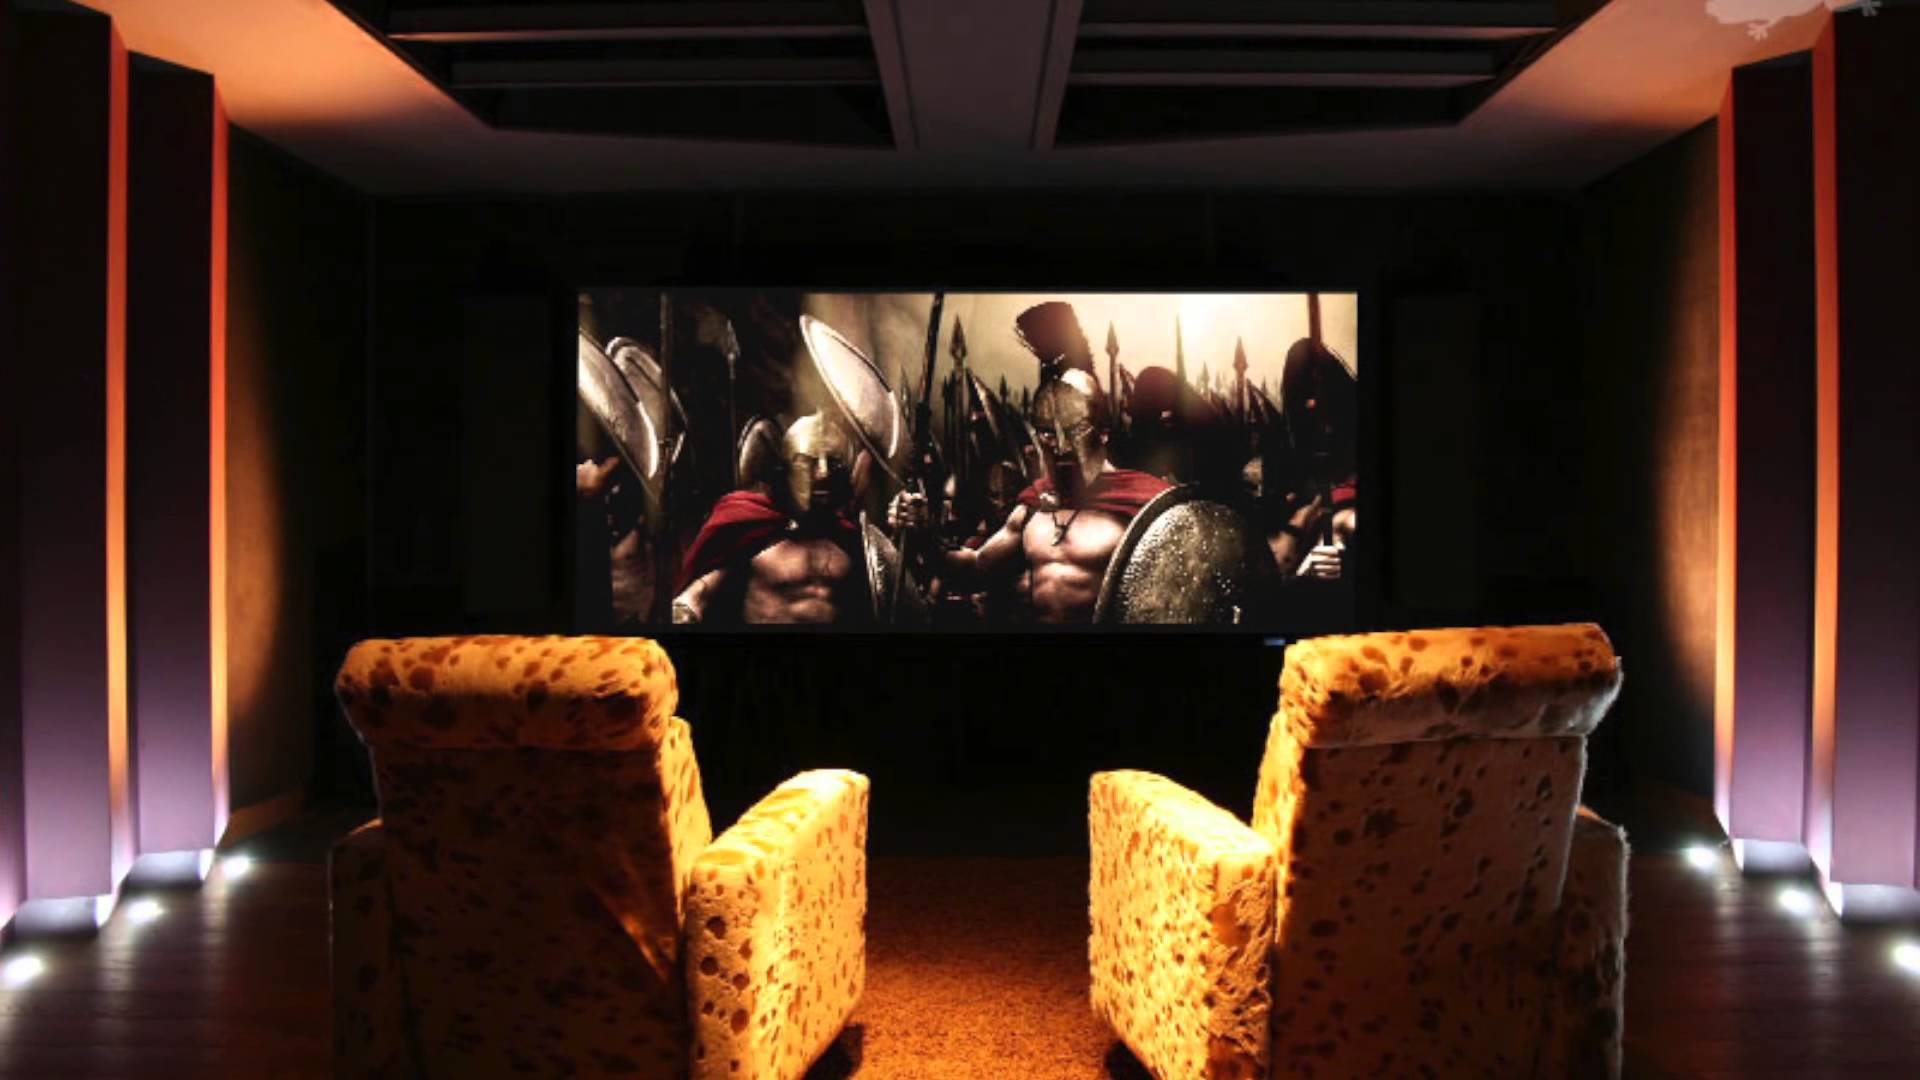 Why public cinema is failing gecko home cinema for Home theater decorations cheap